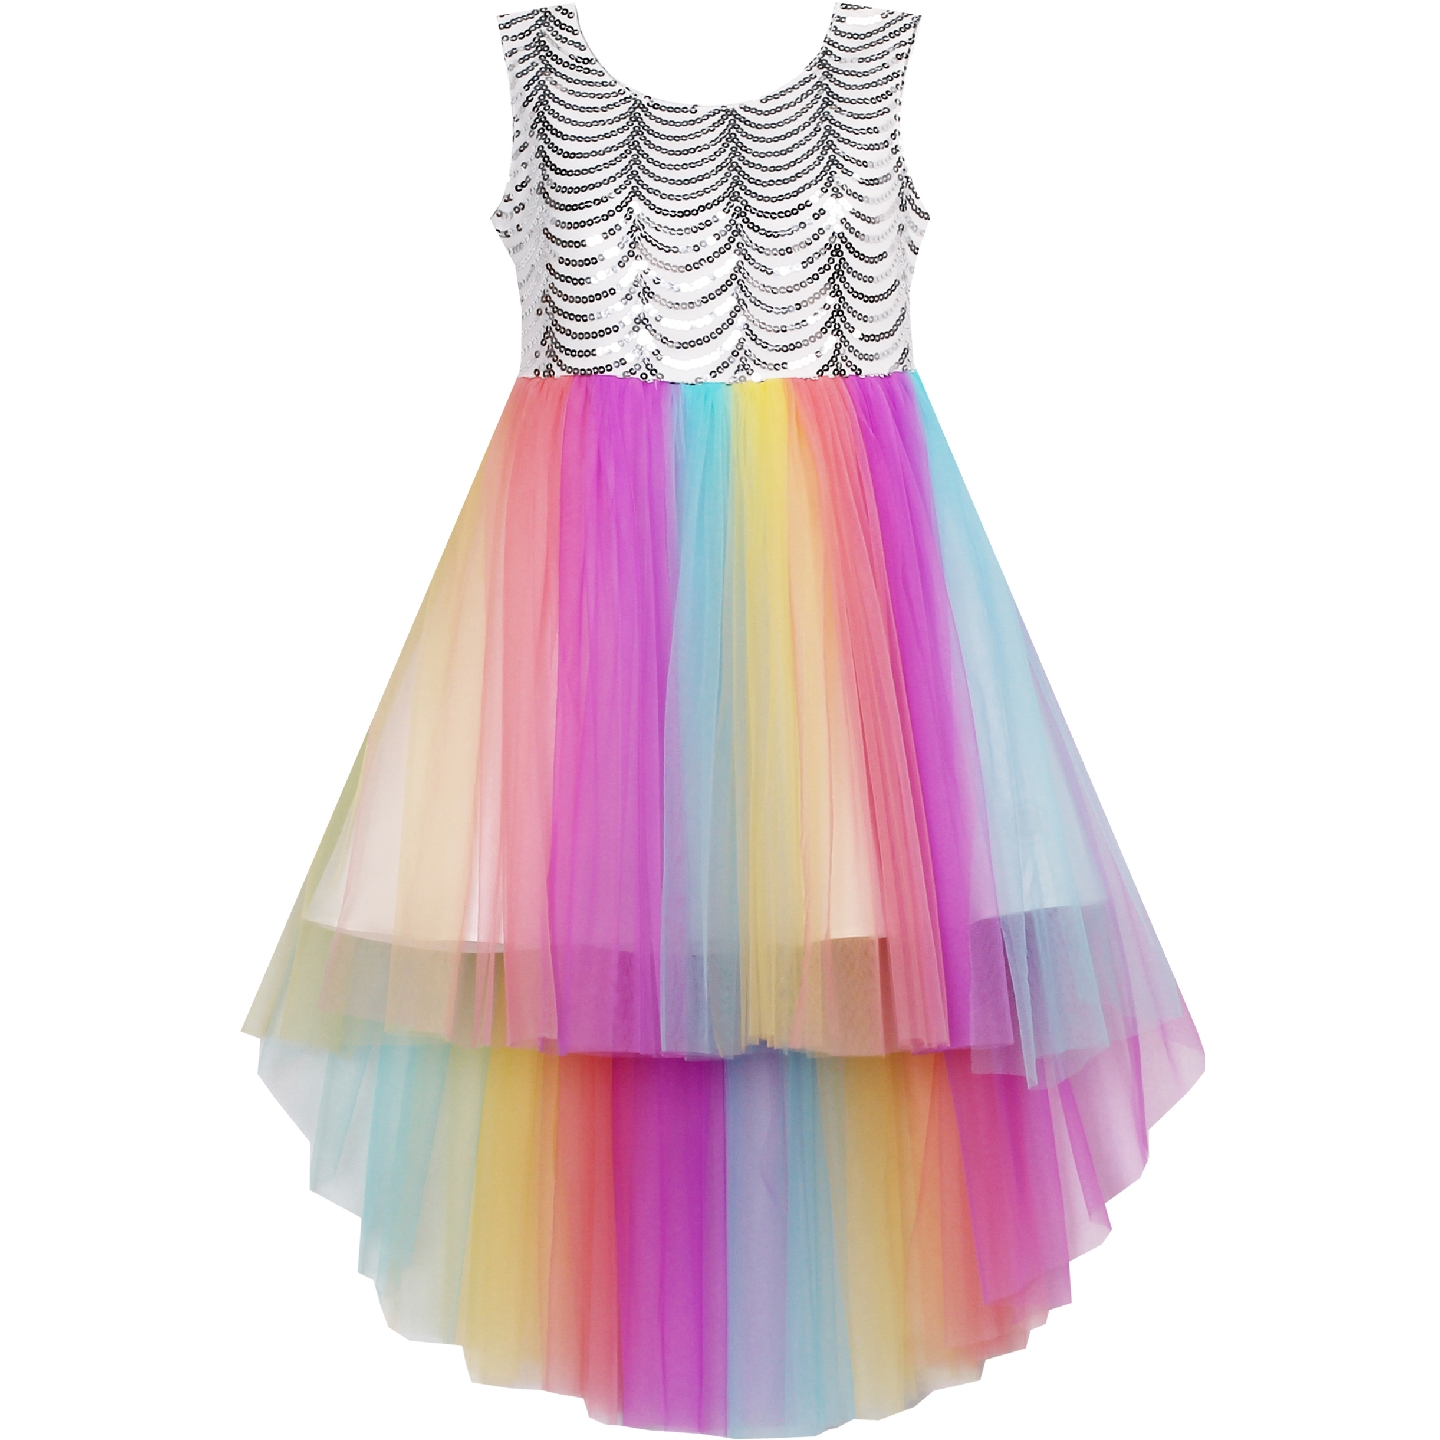 Flower     Girl     Dress   Sequin Mesh Party Wedding Princess Tulle 2019 Summer   Dresses   Kids Clothes Pageant Sundress Vestidos